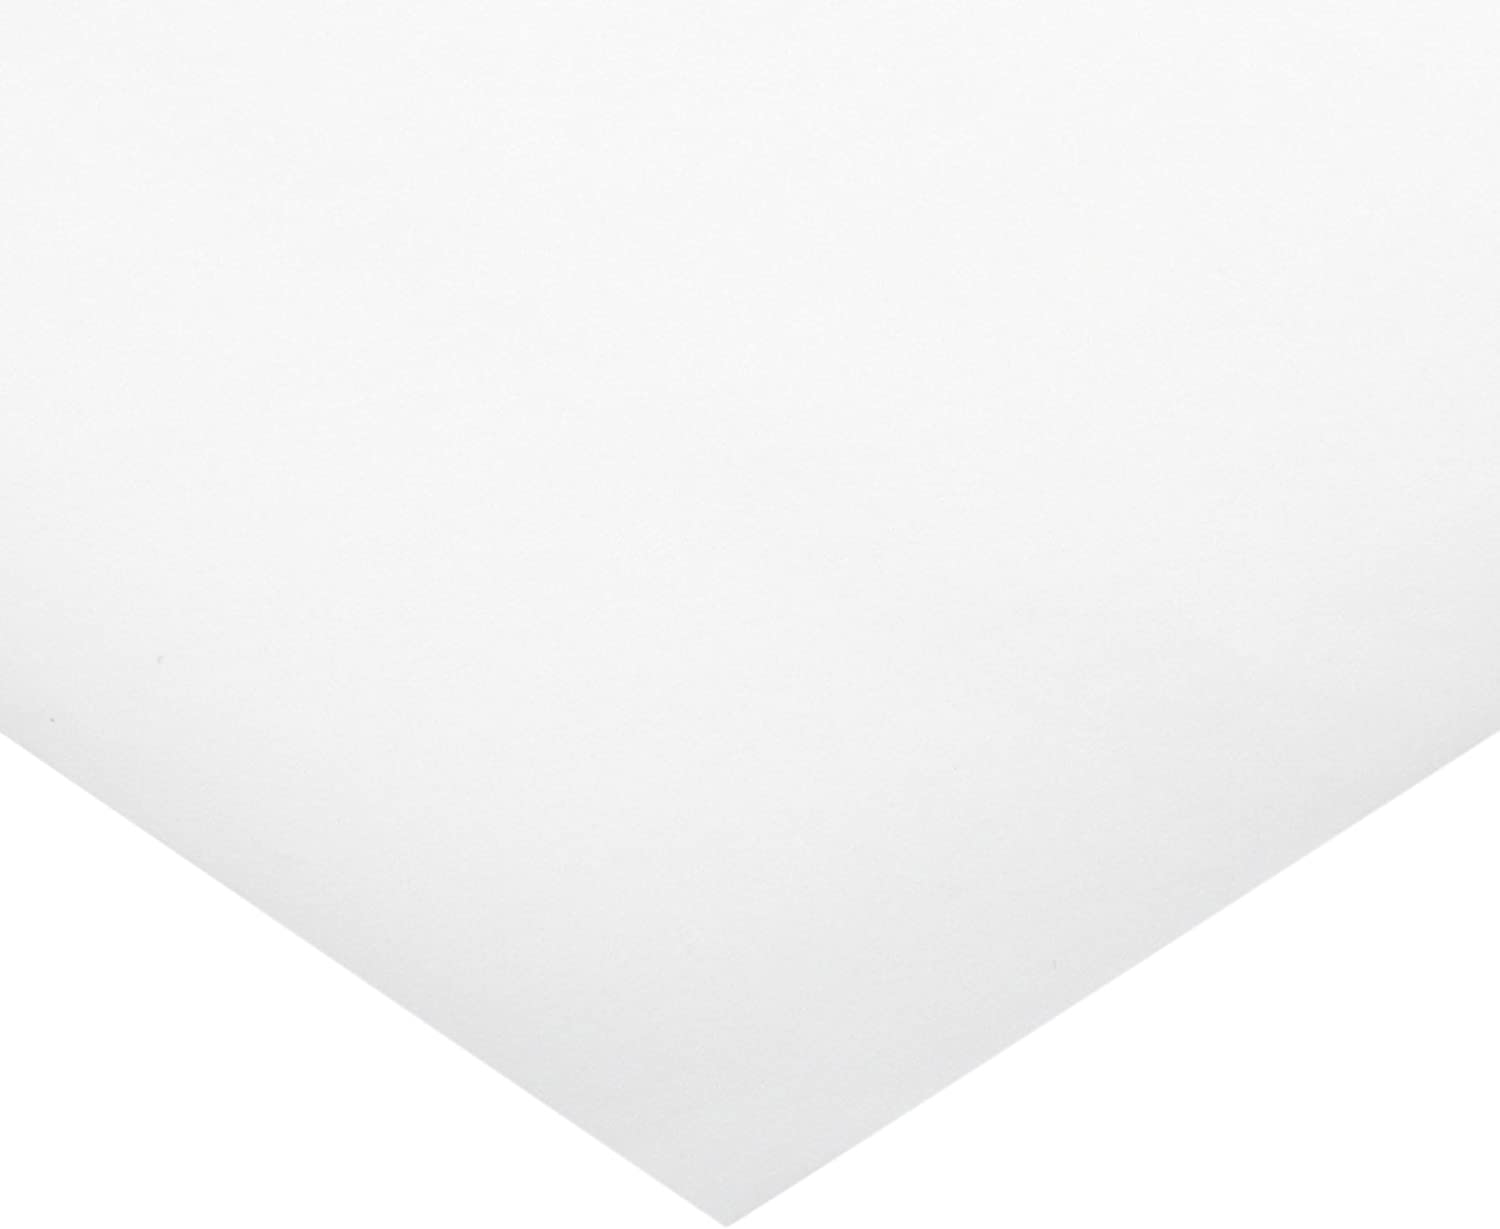 Dixie Parchment Silicon-Coated Pizza Sheet by GP PRO (Georgia-Pacific), White, 27S14, 14  Length x 14  Width, (Case of 1,000)